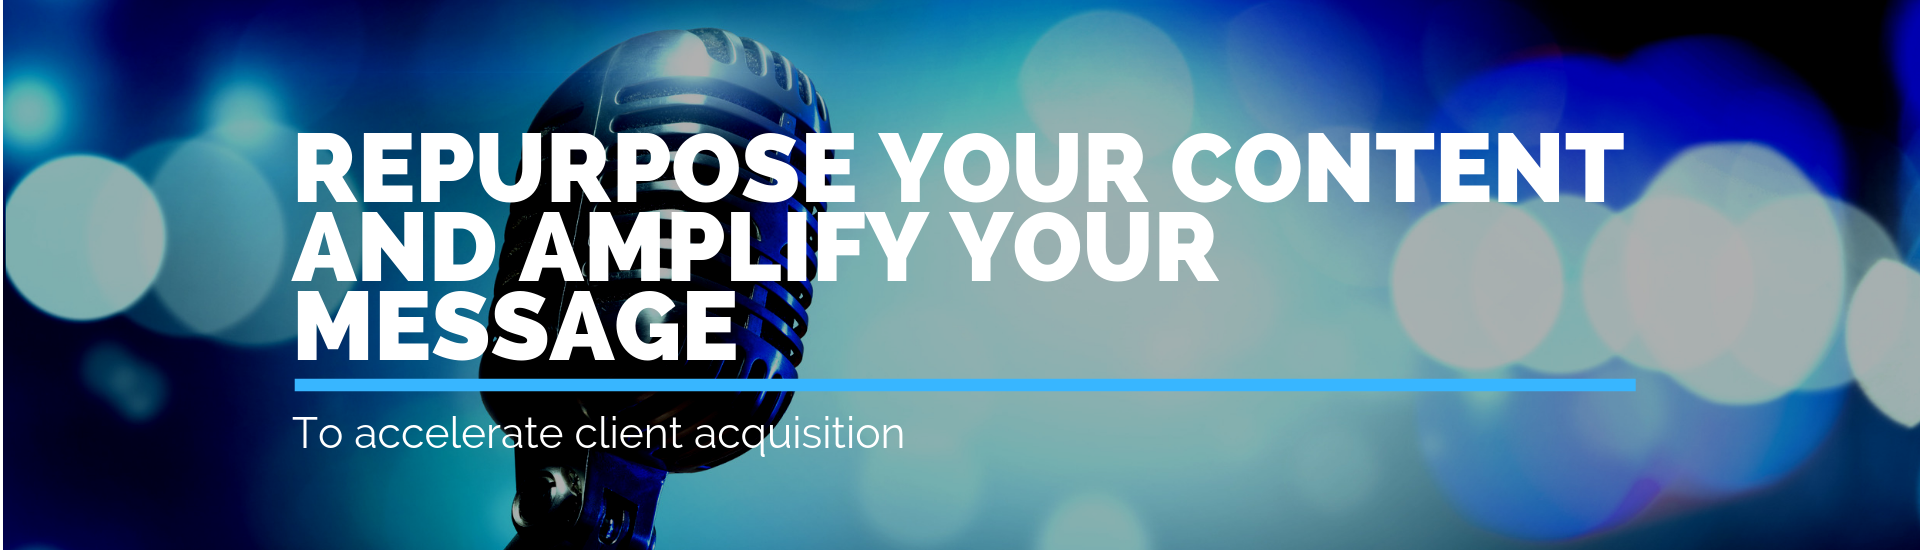 Repurpose your content and amplify your message